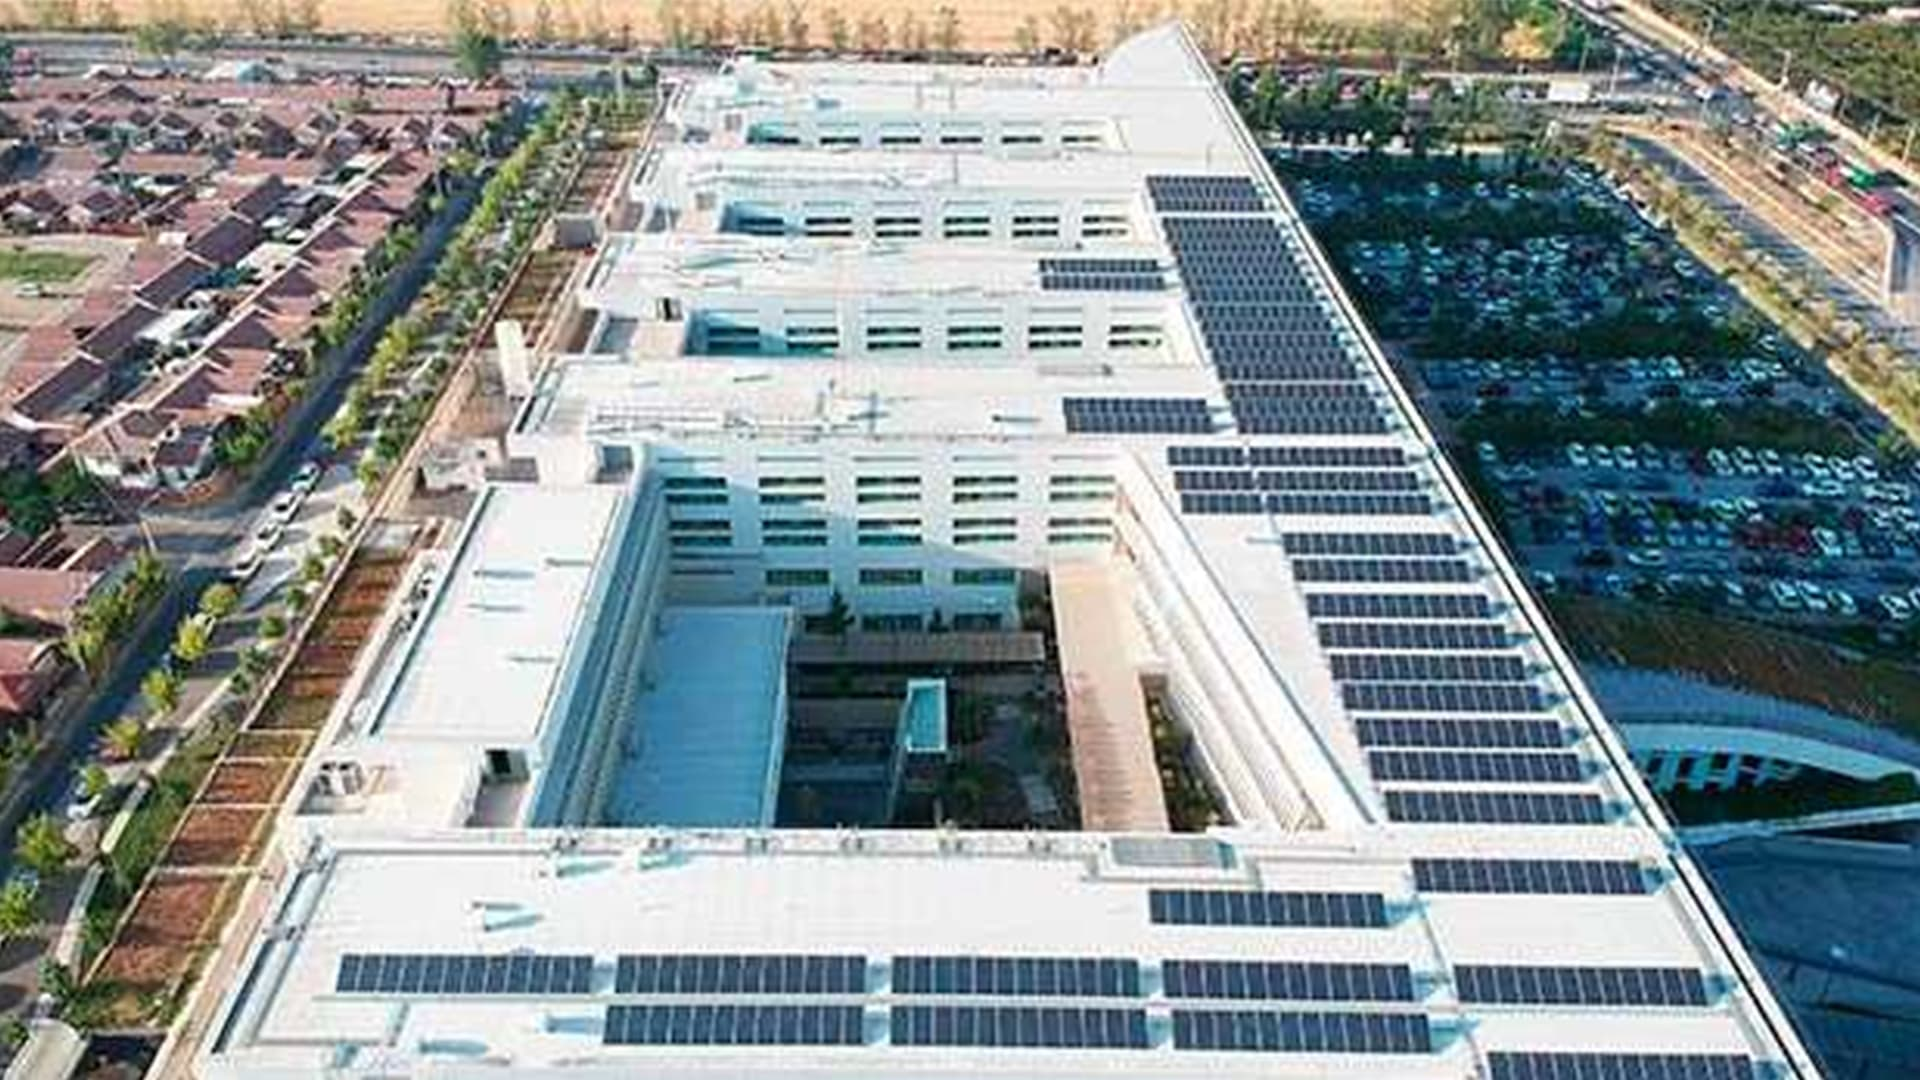 Reference Hospital Rancagua Pv System